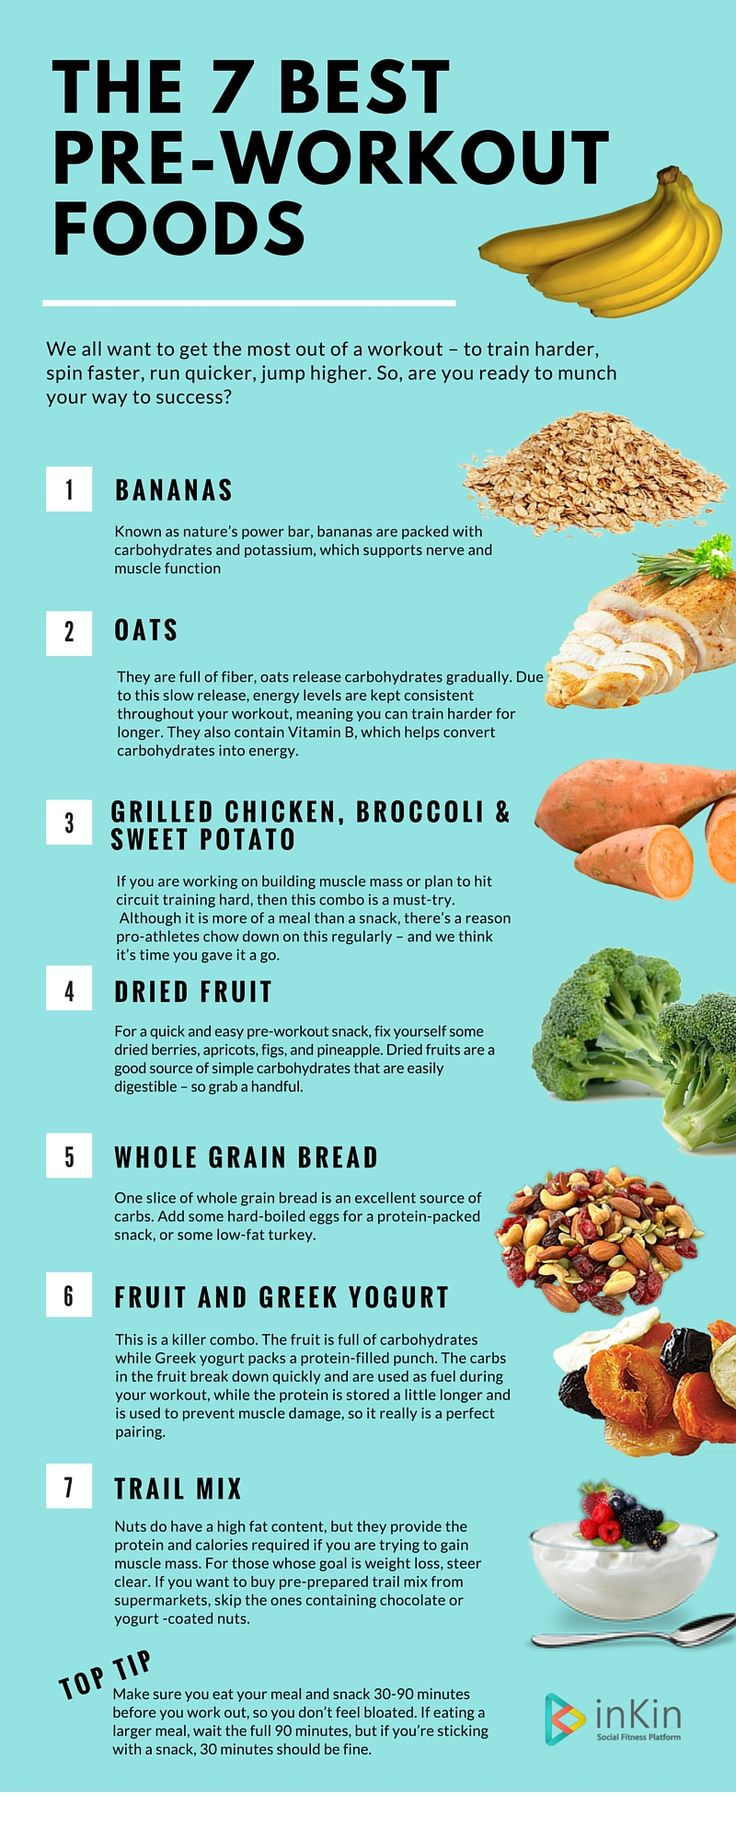 9 brain foods that will improve your focus and concentration